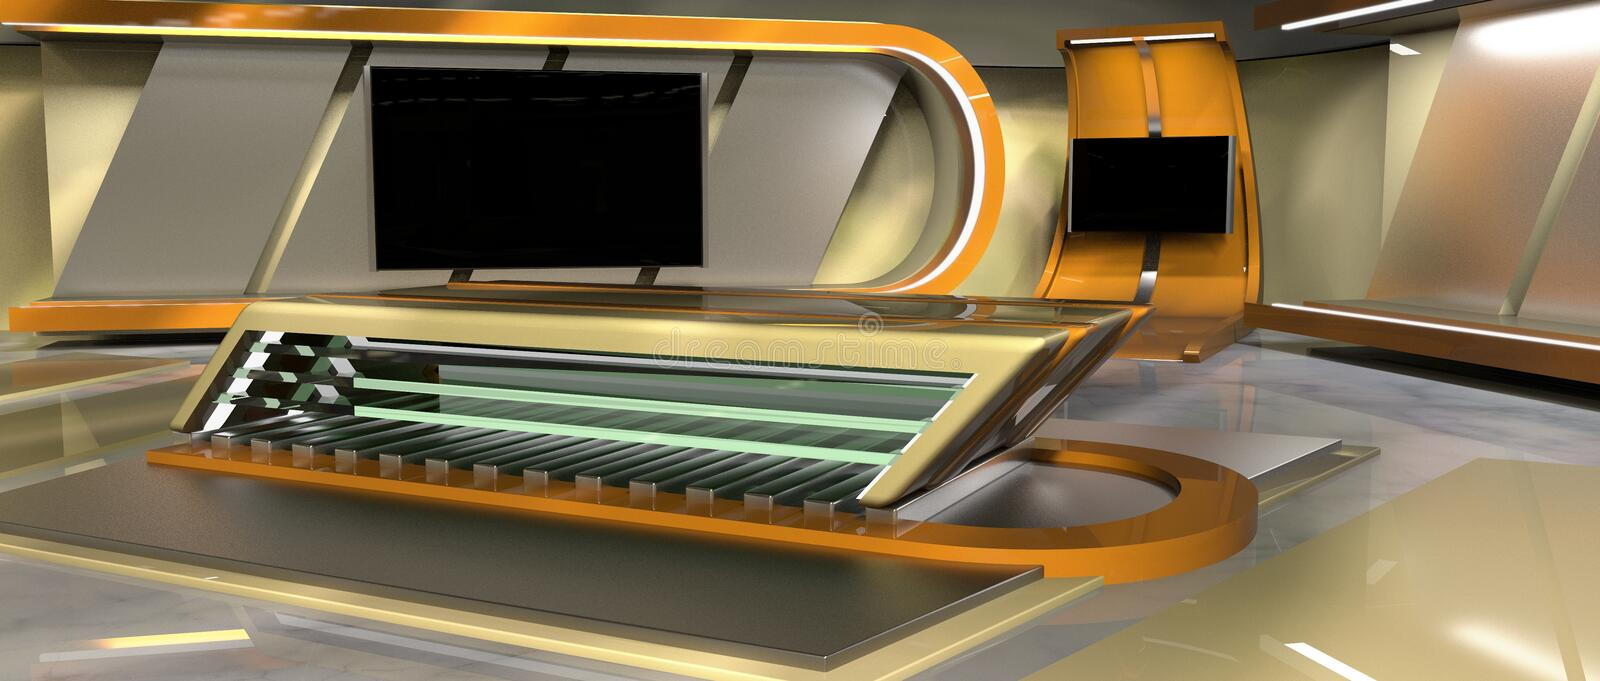 News Virtual Set. CGI 3D rendered Virtual Set for news and TV, right view royalty free illustration